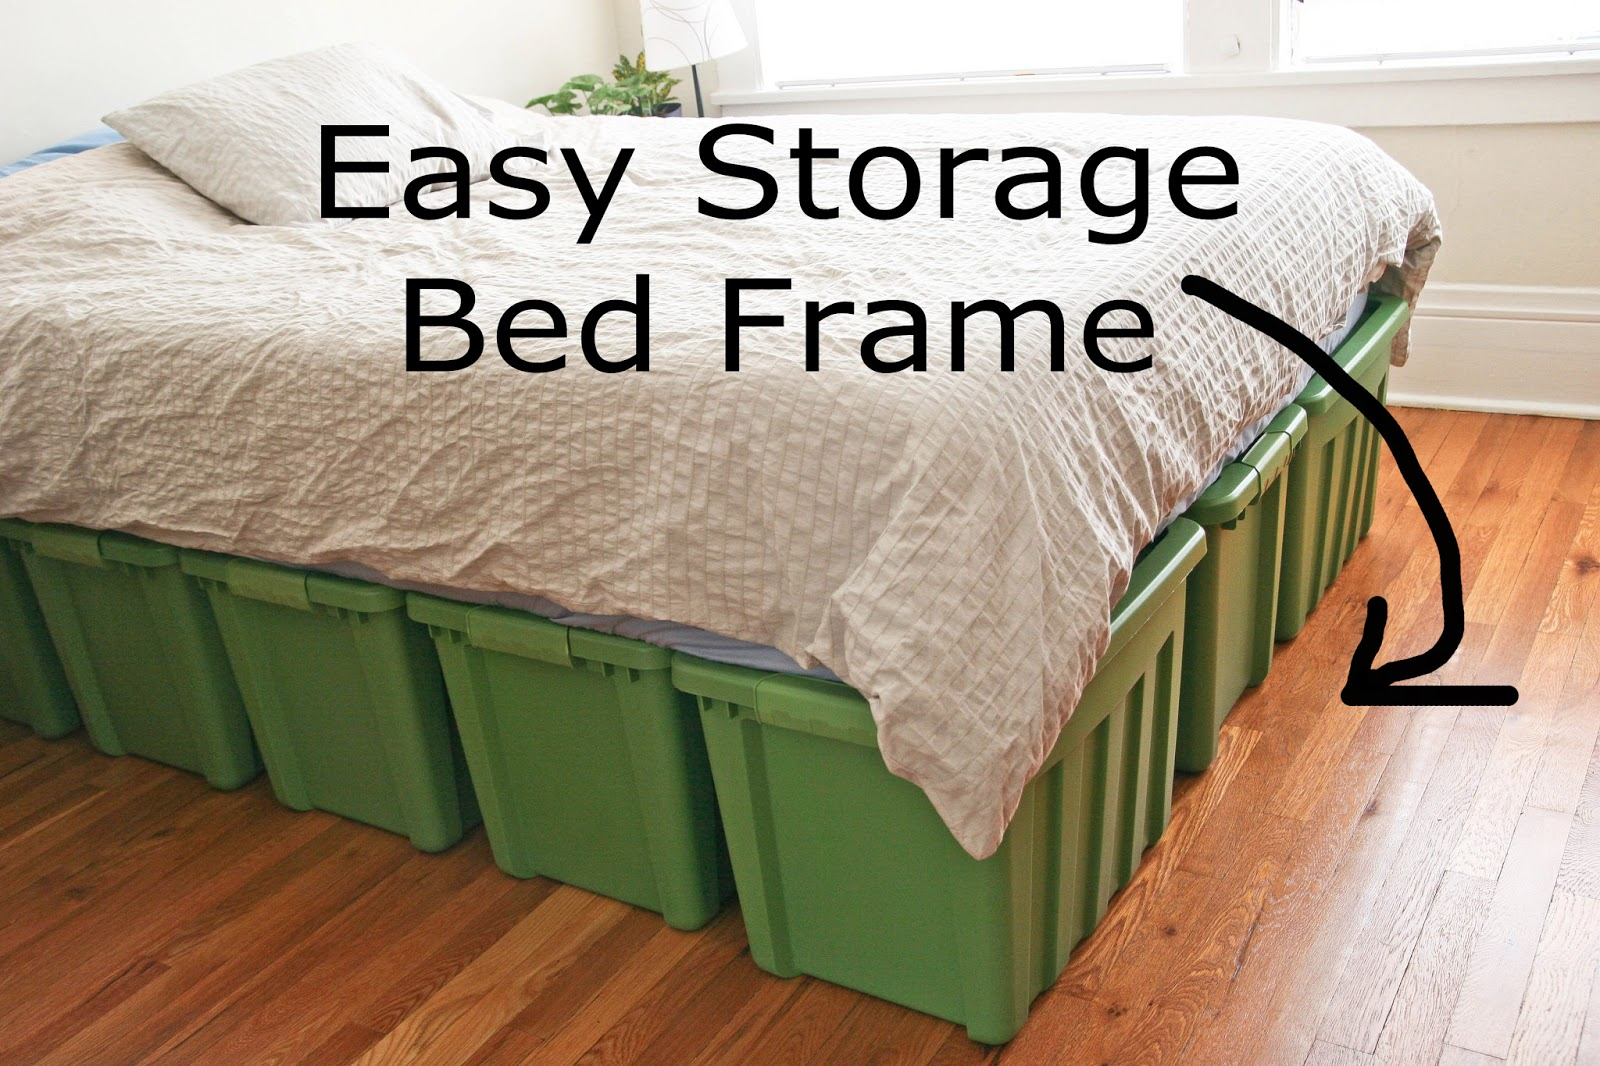 Woodworking storage bed frame diy PDF Free Download